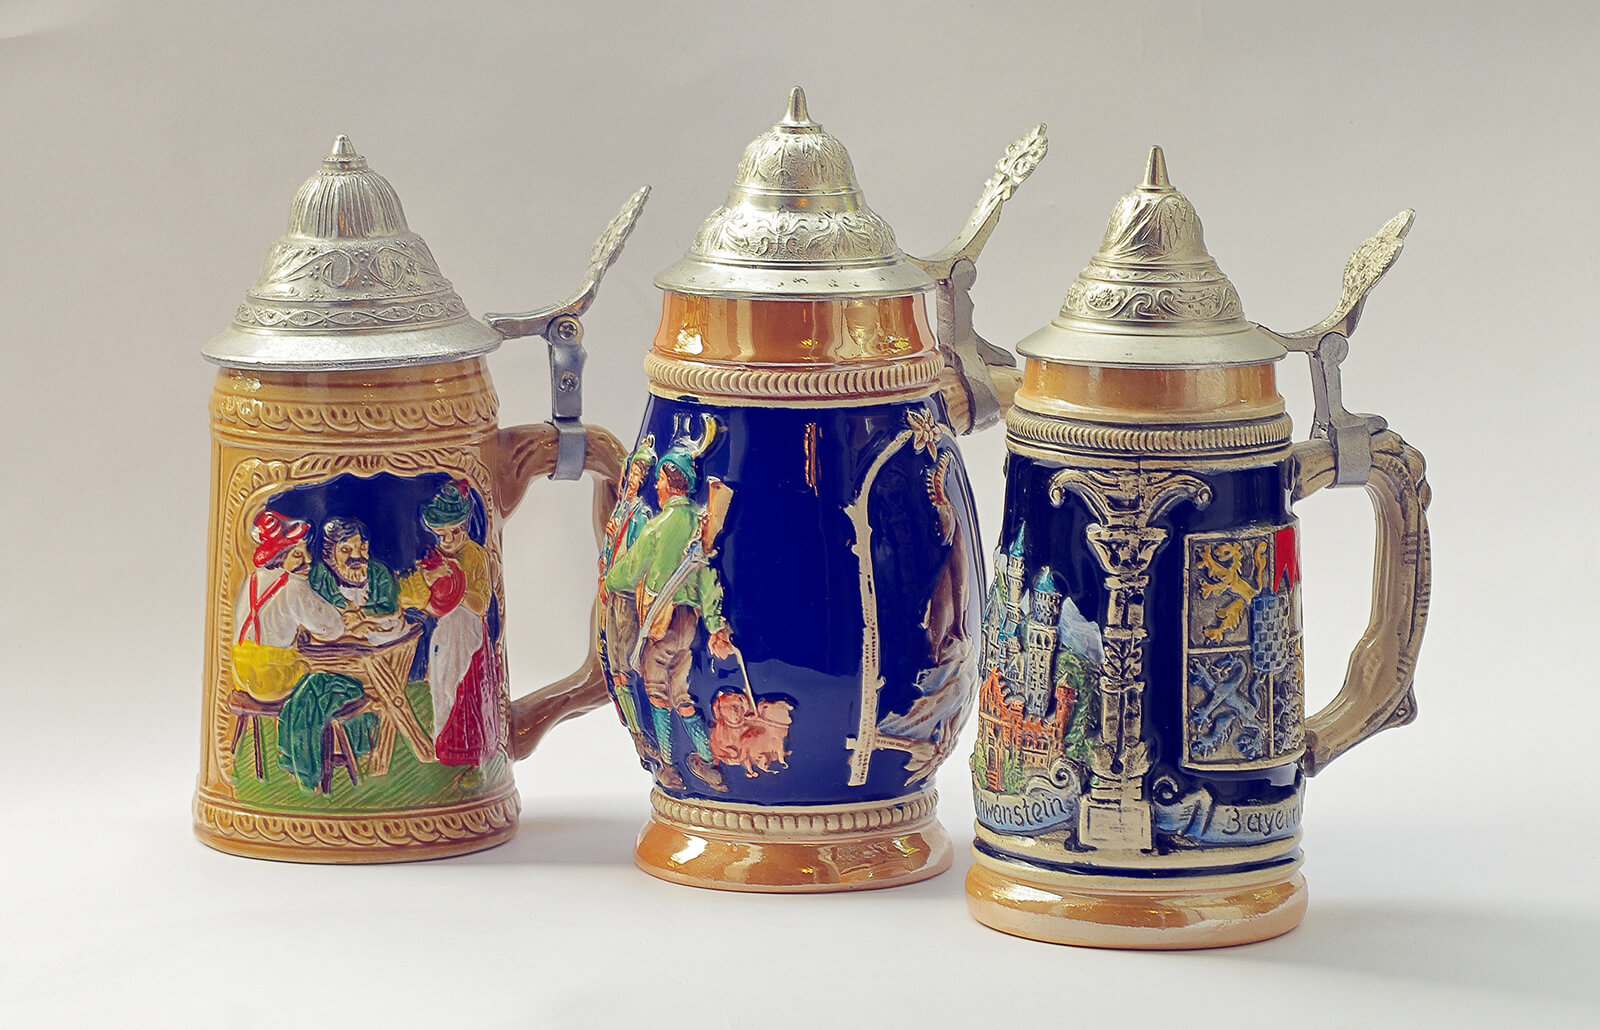 Antique German Beer Steins Values And History Lovetoknow